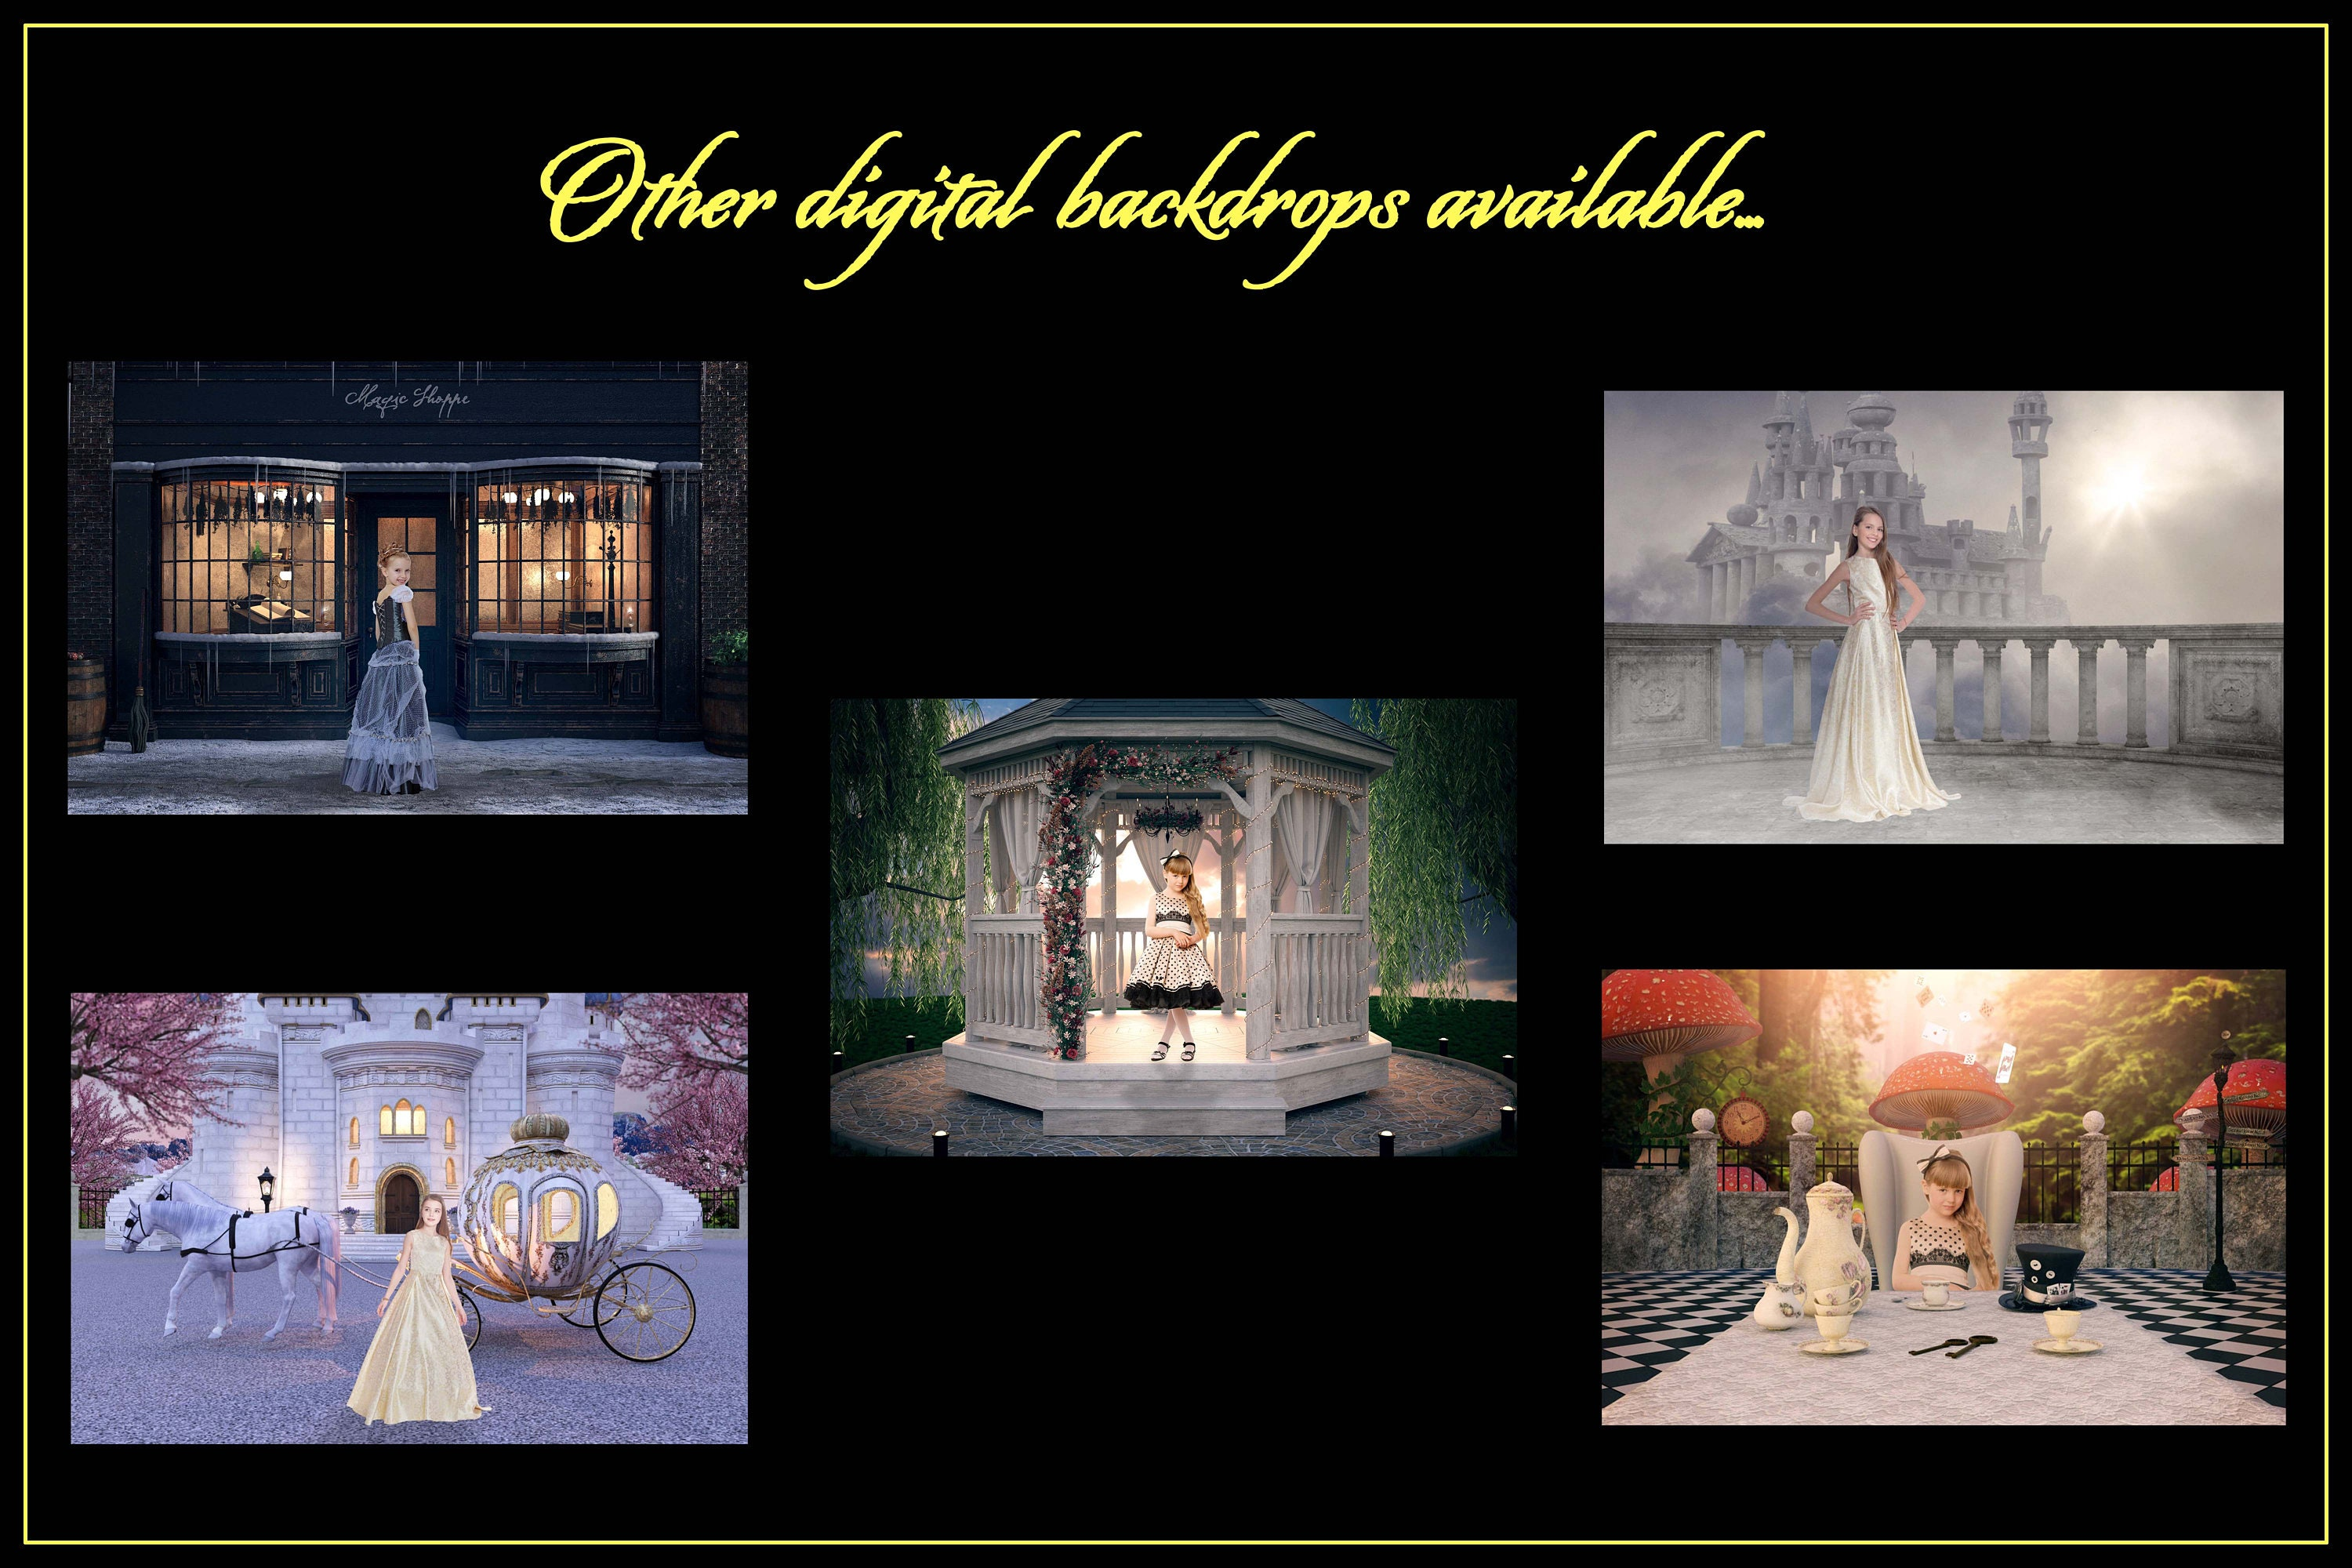 Special Effects for Photoshop High Resolution Instant Download Magical Stardust Overlays Separate Png Files CUOK.